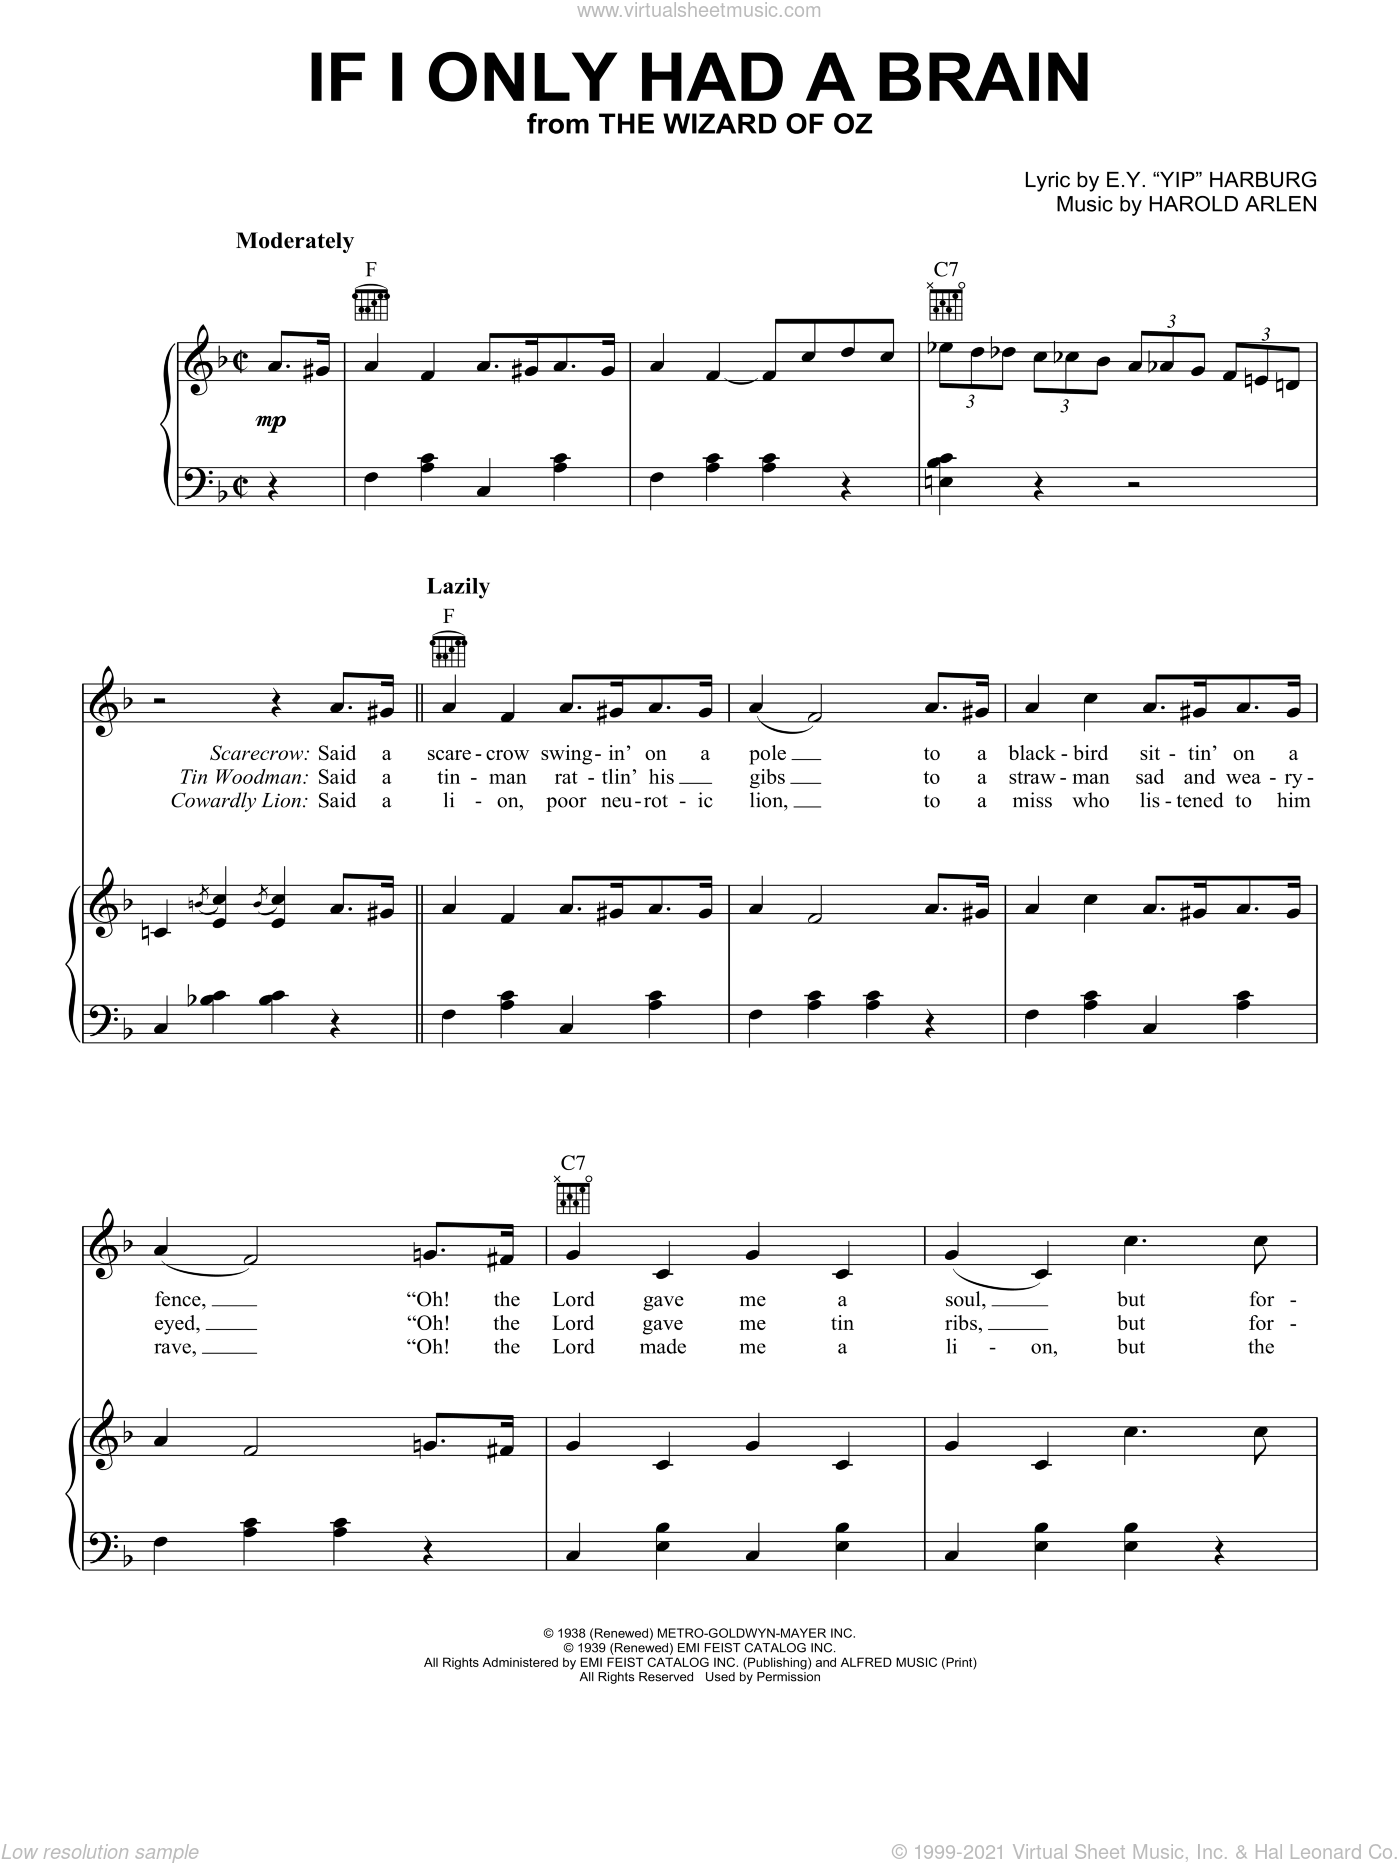 If I Only Had A Brain sheet music for voice, piano or guitar by Ray Bolger, Judy Garland, The Wizard Of Oz (Movie), E.Y. Harburg and Harold Arlen, intermediate skill level